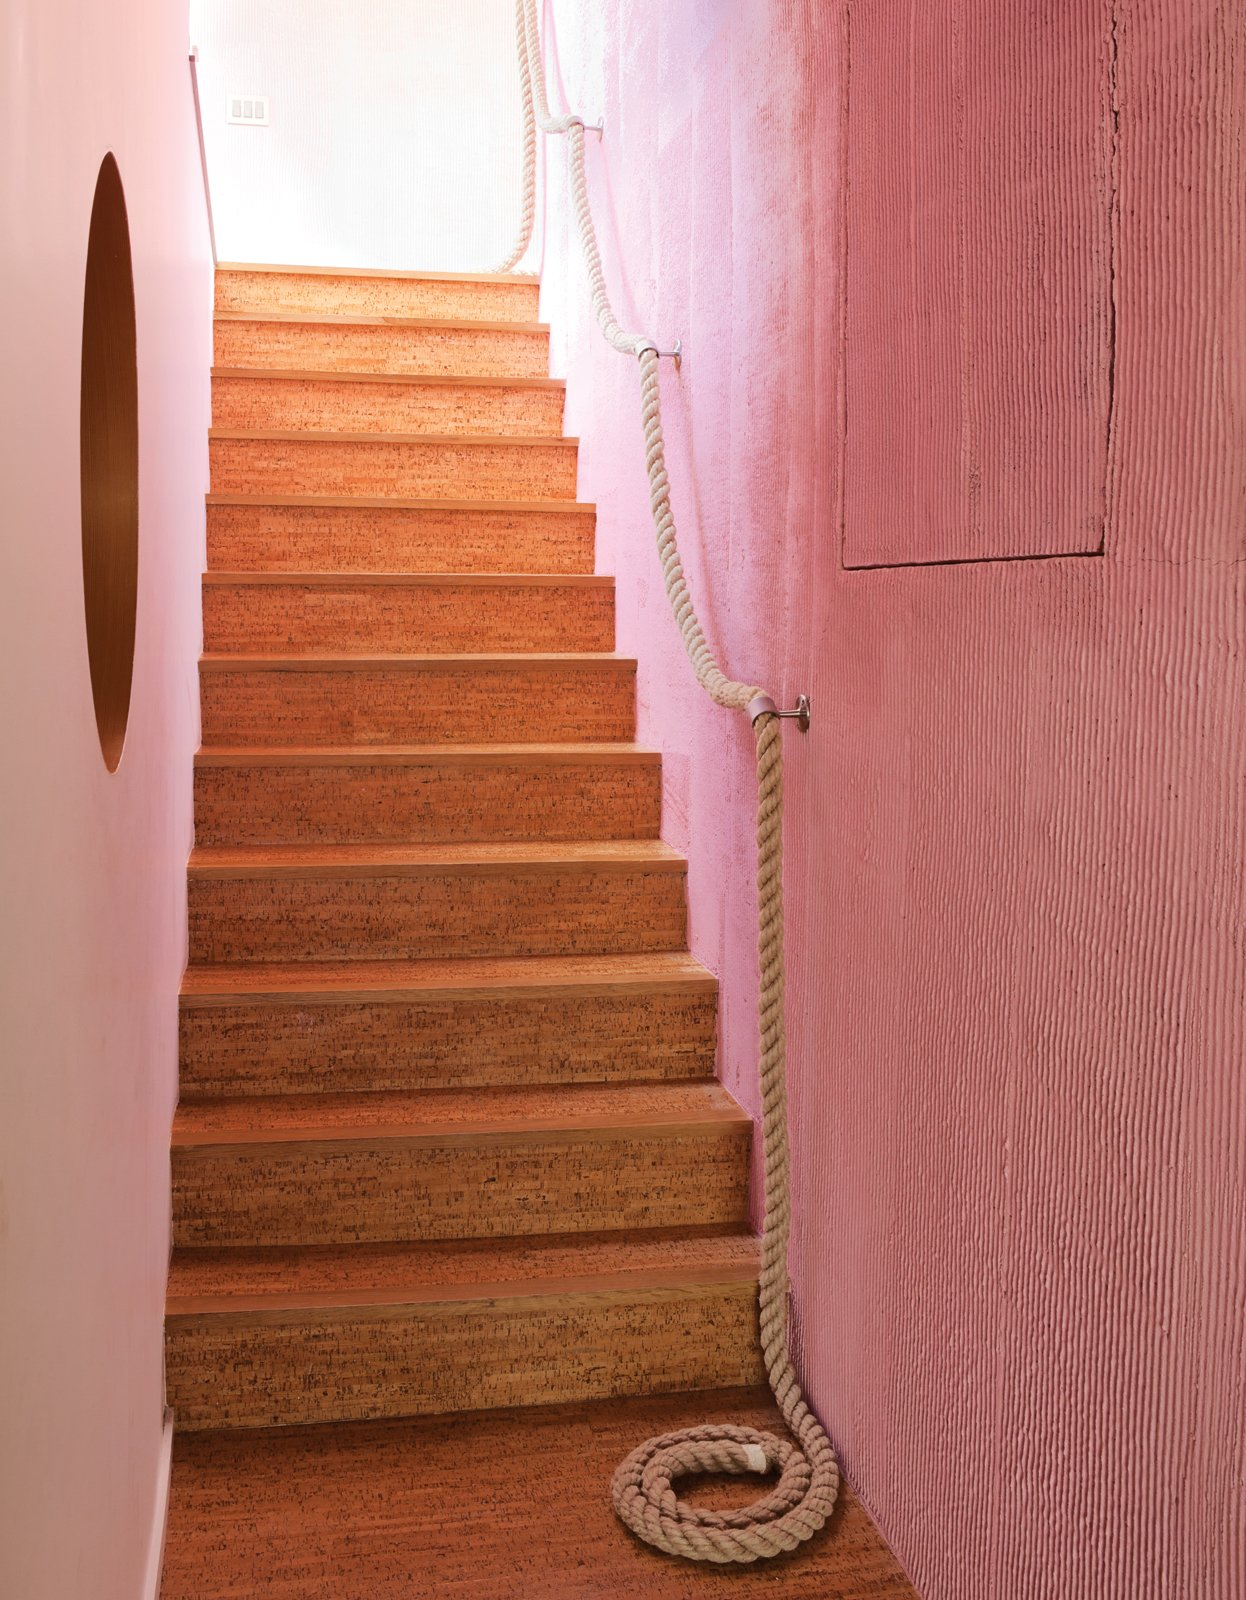 The cork stairs with a rope railing lead down to the kids' level. Tagged: Staircase and Wood Tread.  Photo 9 of 13 in A Fresh Dose of Color Livens Up This Midcentury Los Angeles Home